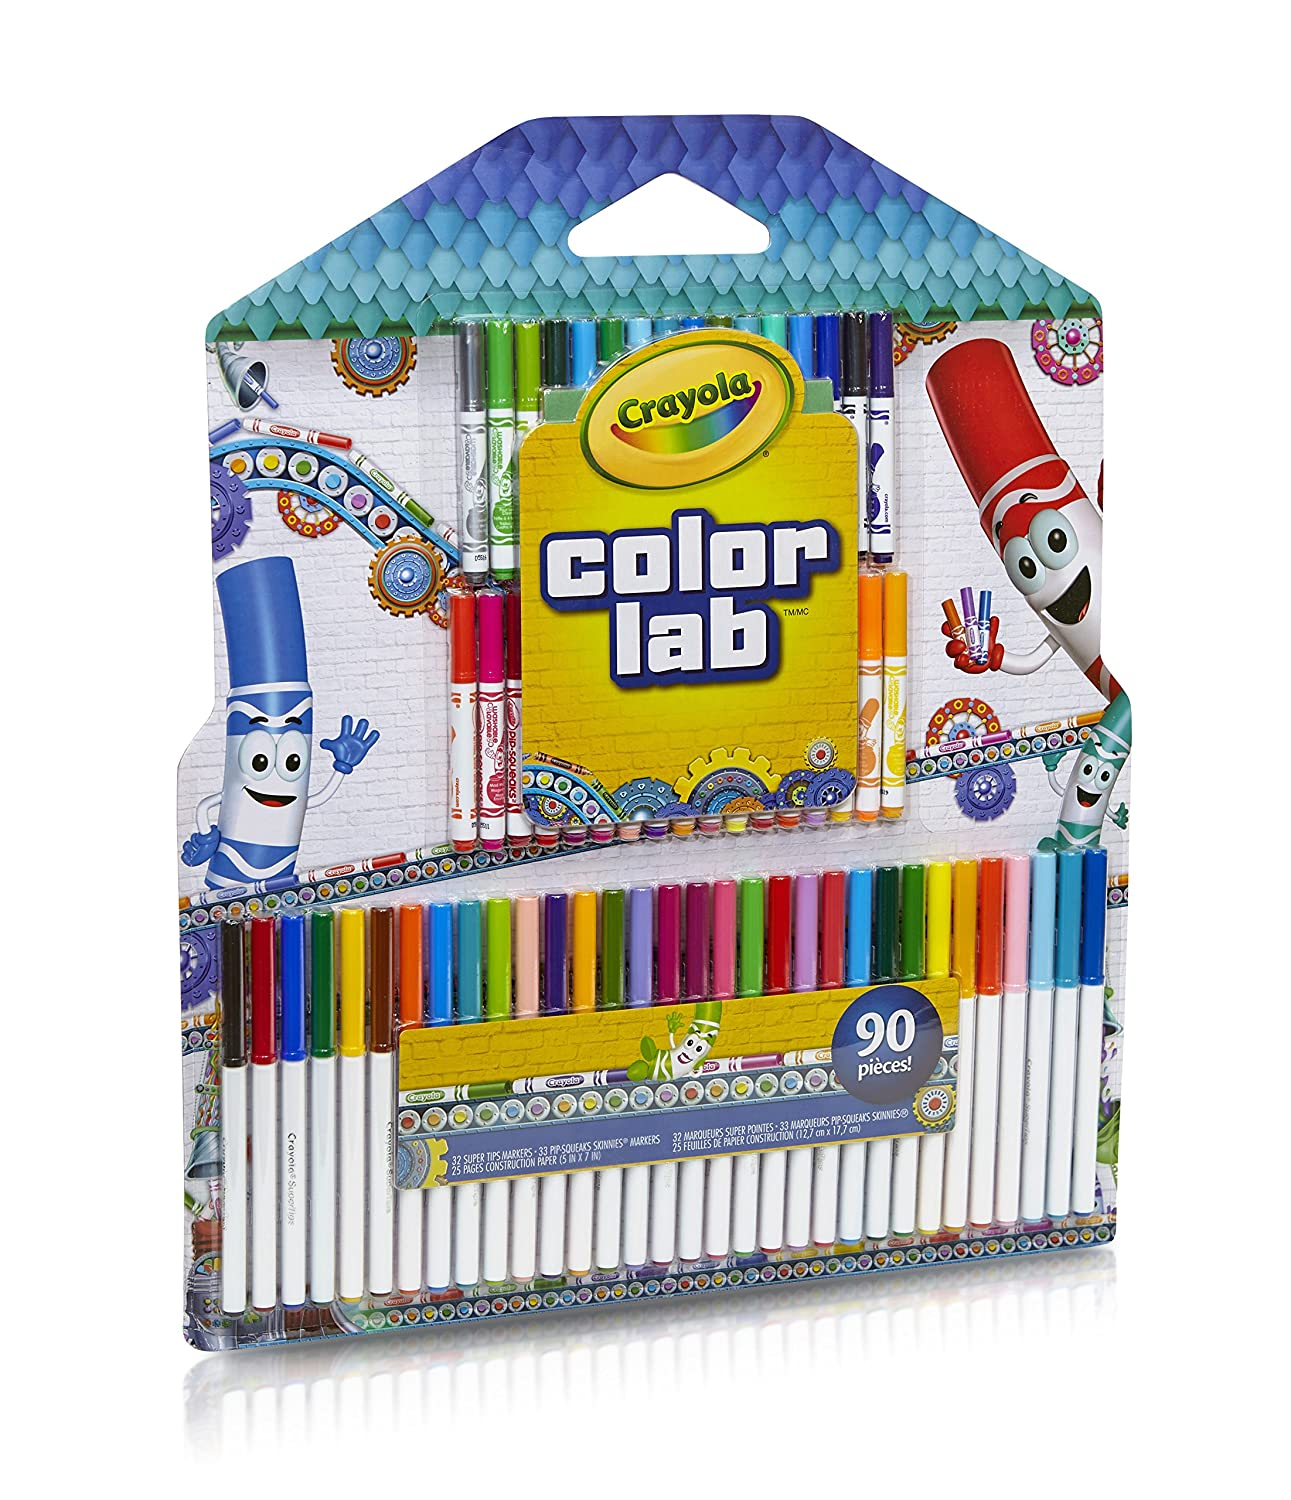 Unique Image De Crayon De Couleur à Colorier